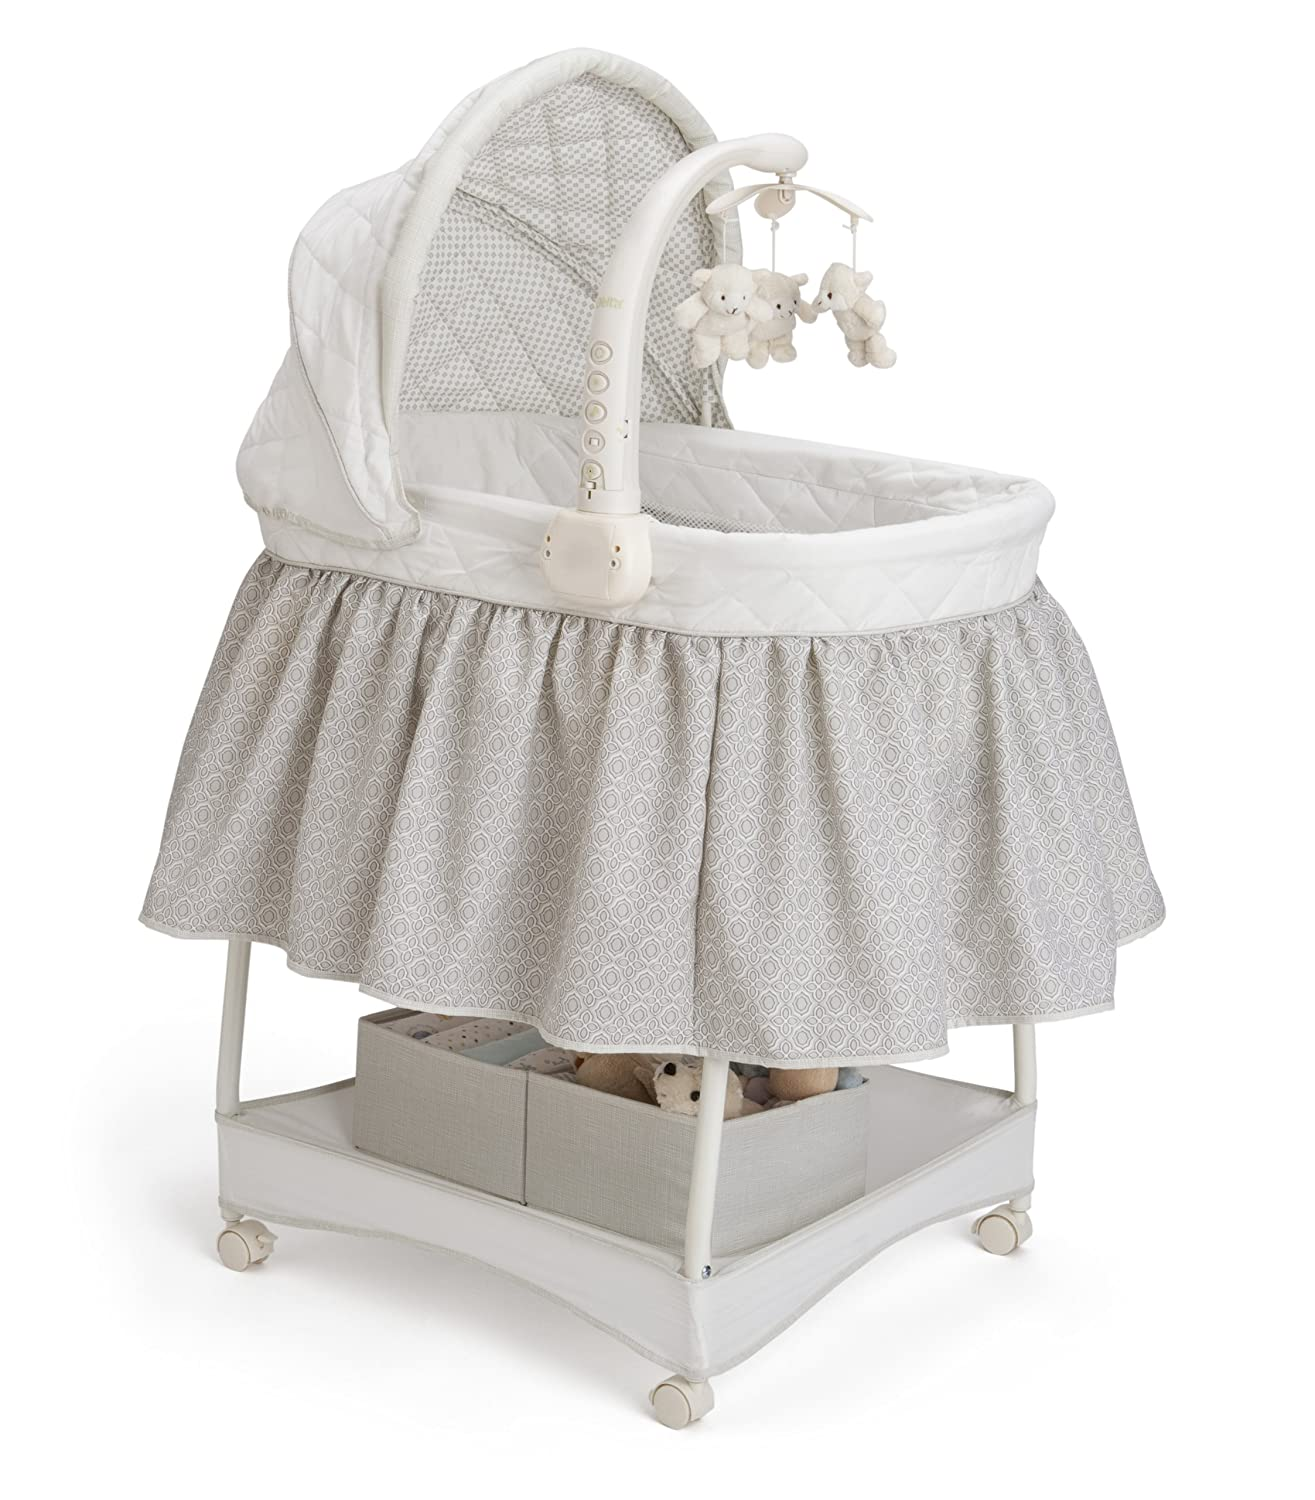 Delta Children Deluxe Gliding Bassinet, Silver Lining Delta Children's Products 27201-056